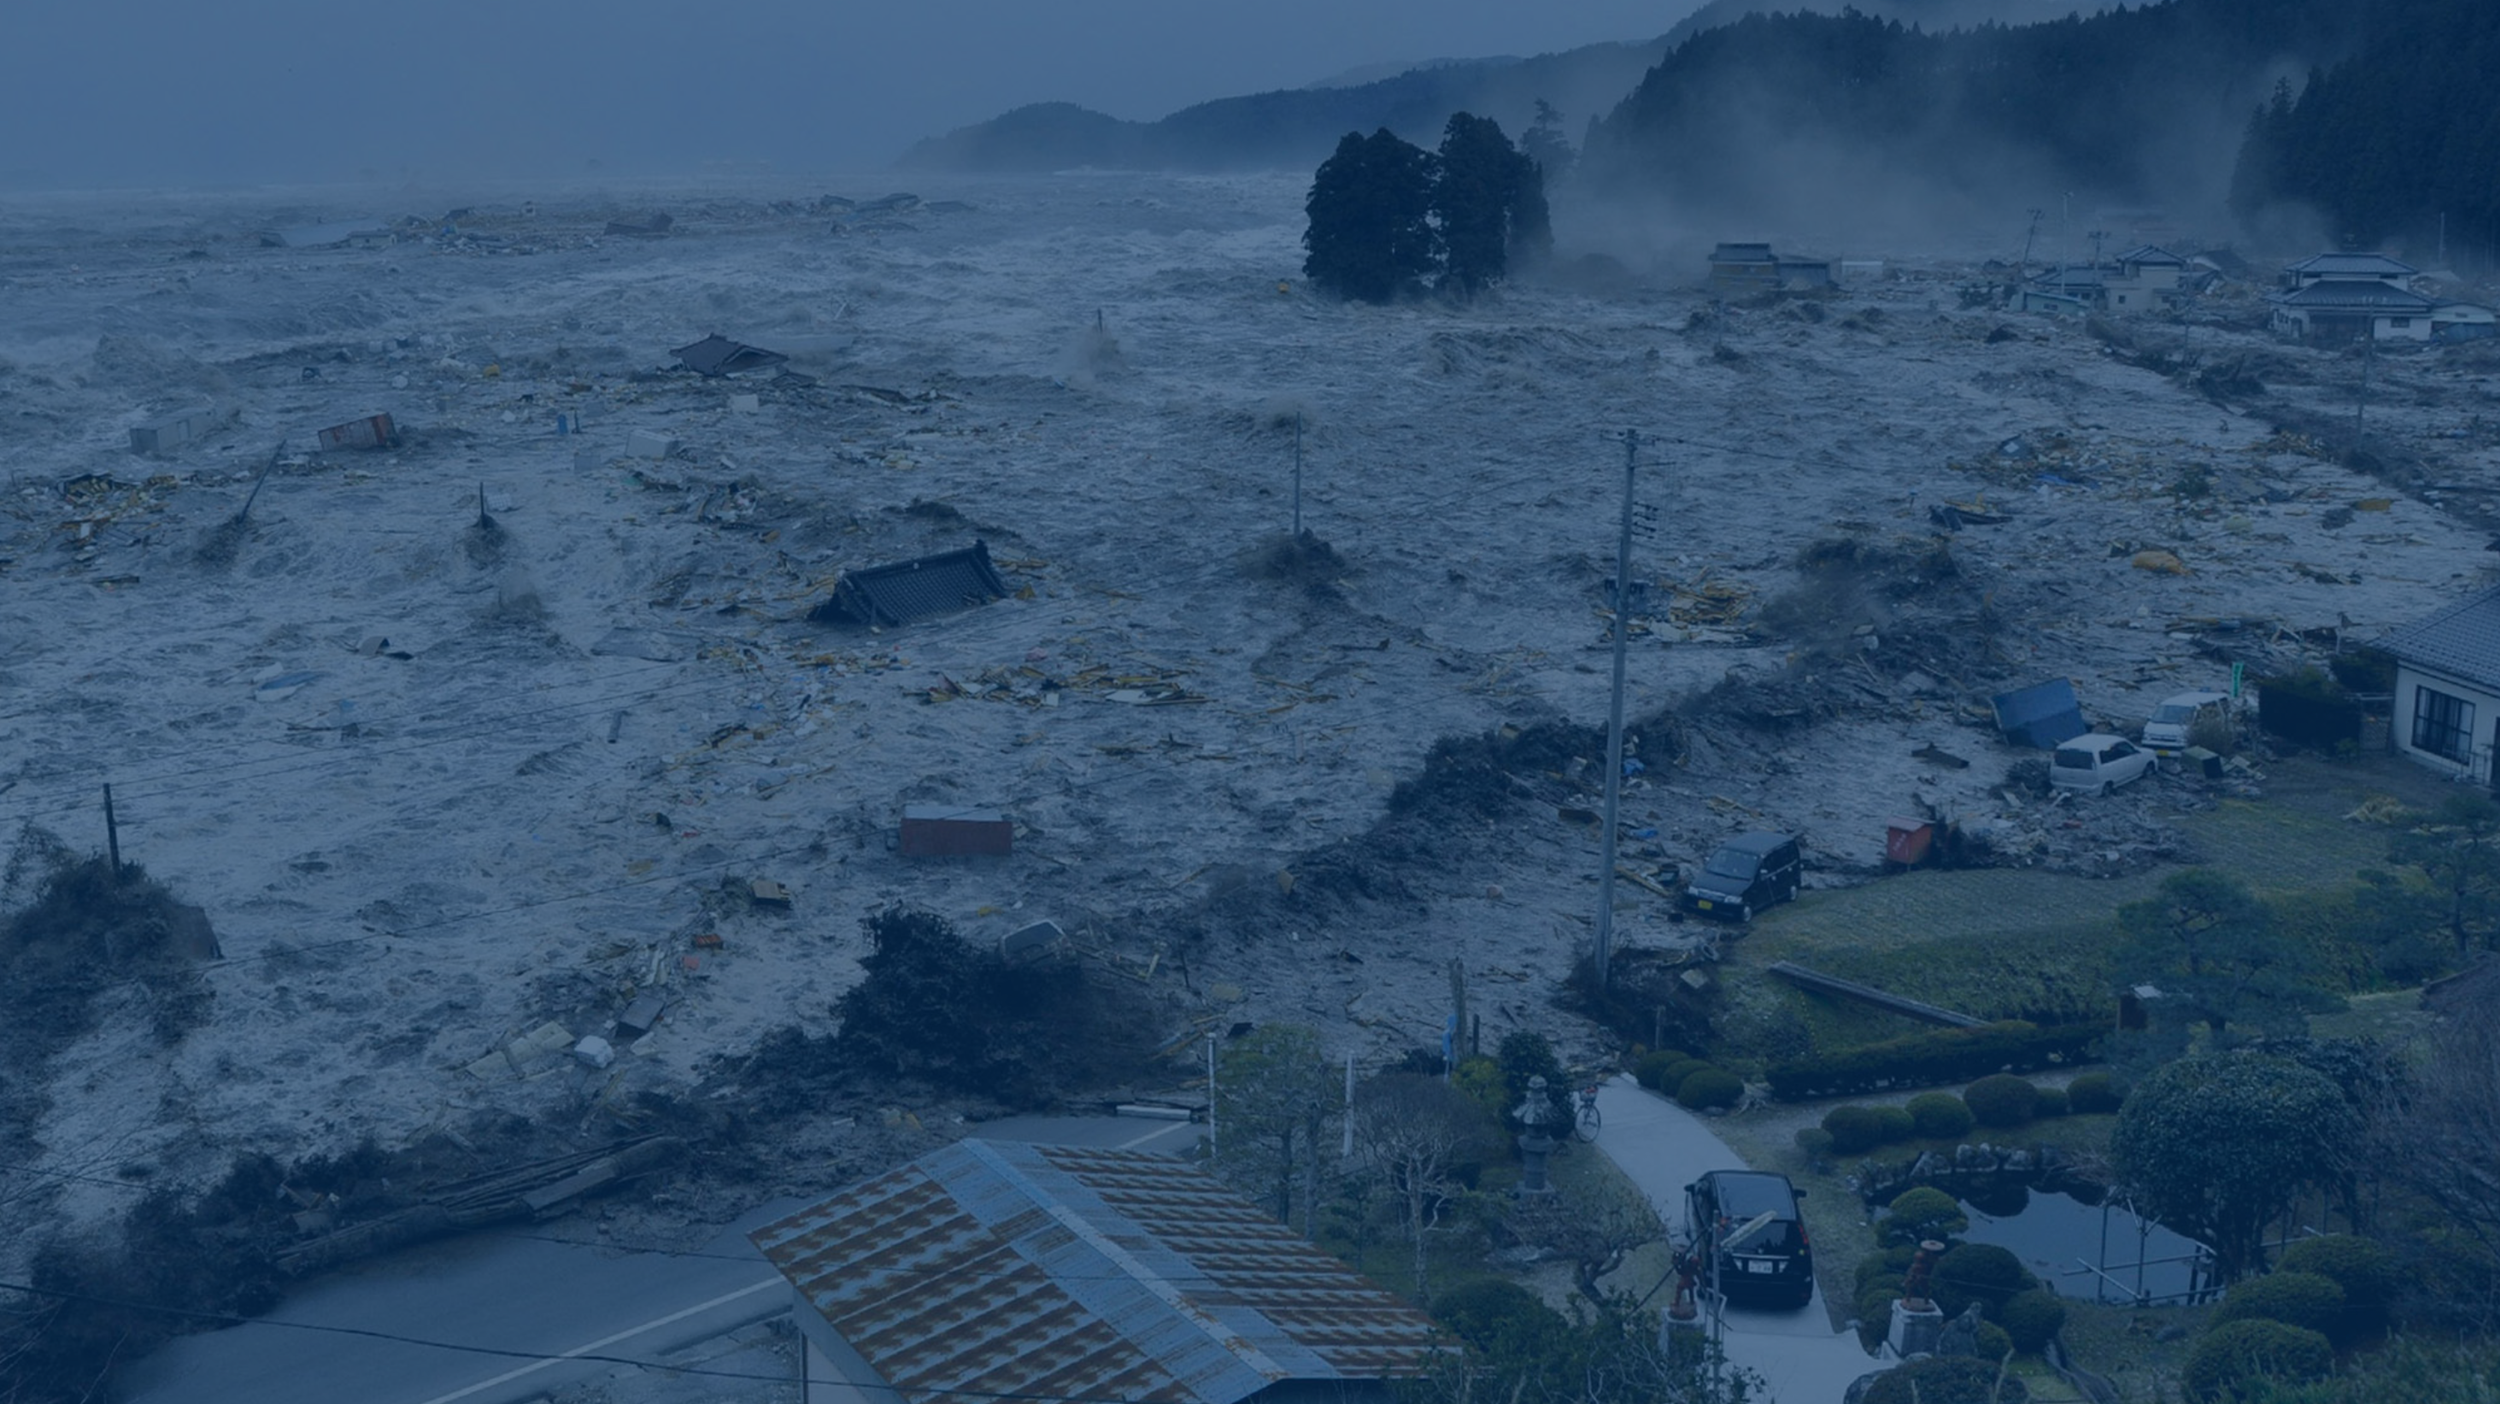 Tsunami Relief - What if our cities could respond smarter to tsunamis and save lives?(Seeking experts in inflatable robotics, iOT, and planetary science)